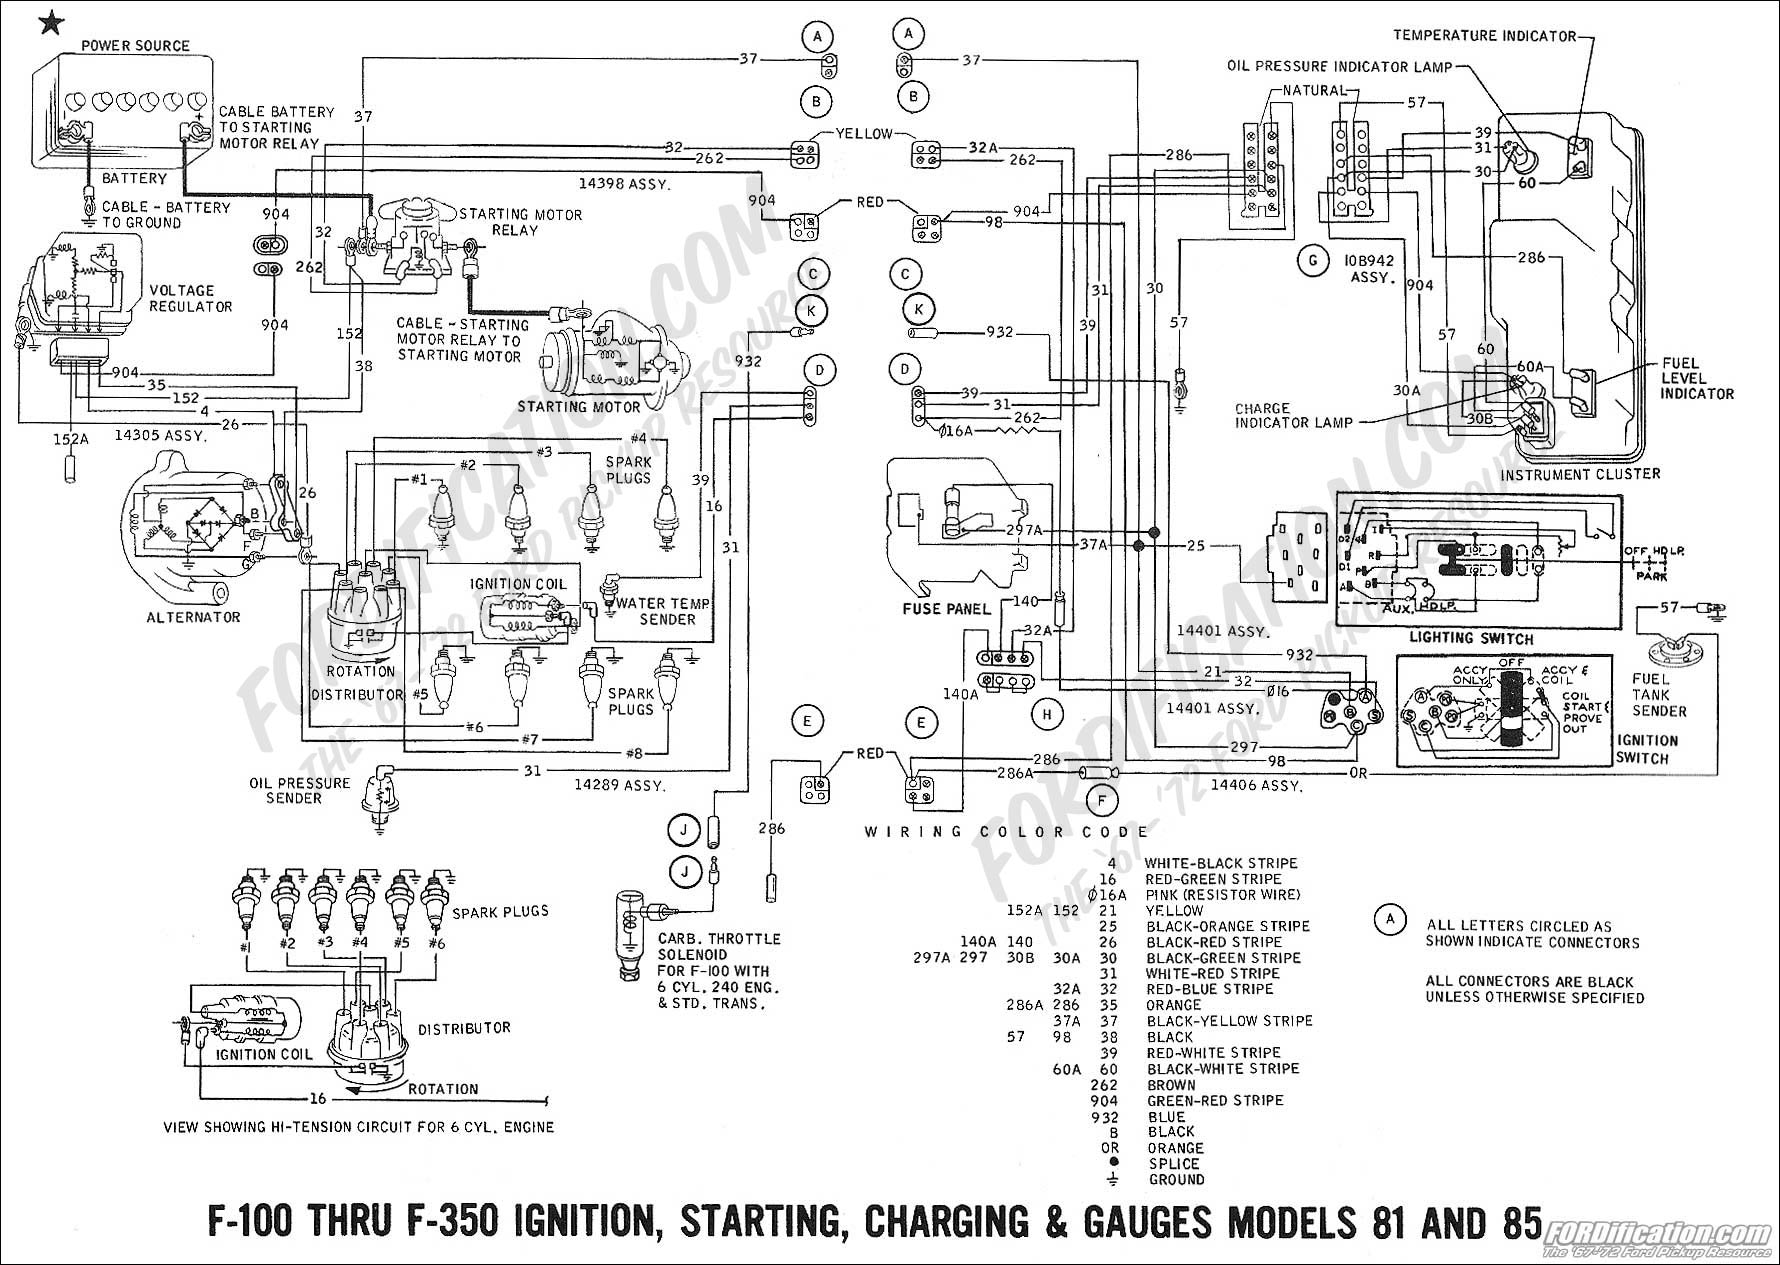 Phenomenal Ford Thunderbird Wiring Diagram 1956 Ford Truck Wiring Diagram Wiring Cloud Peadfoxcilixyz